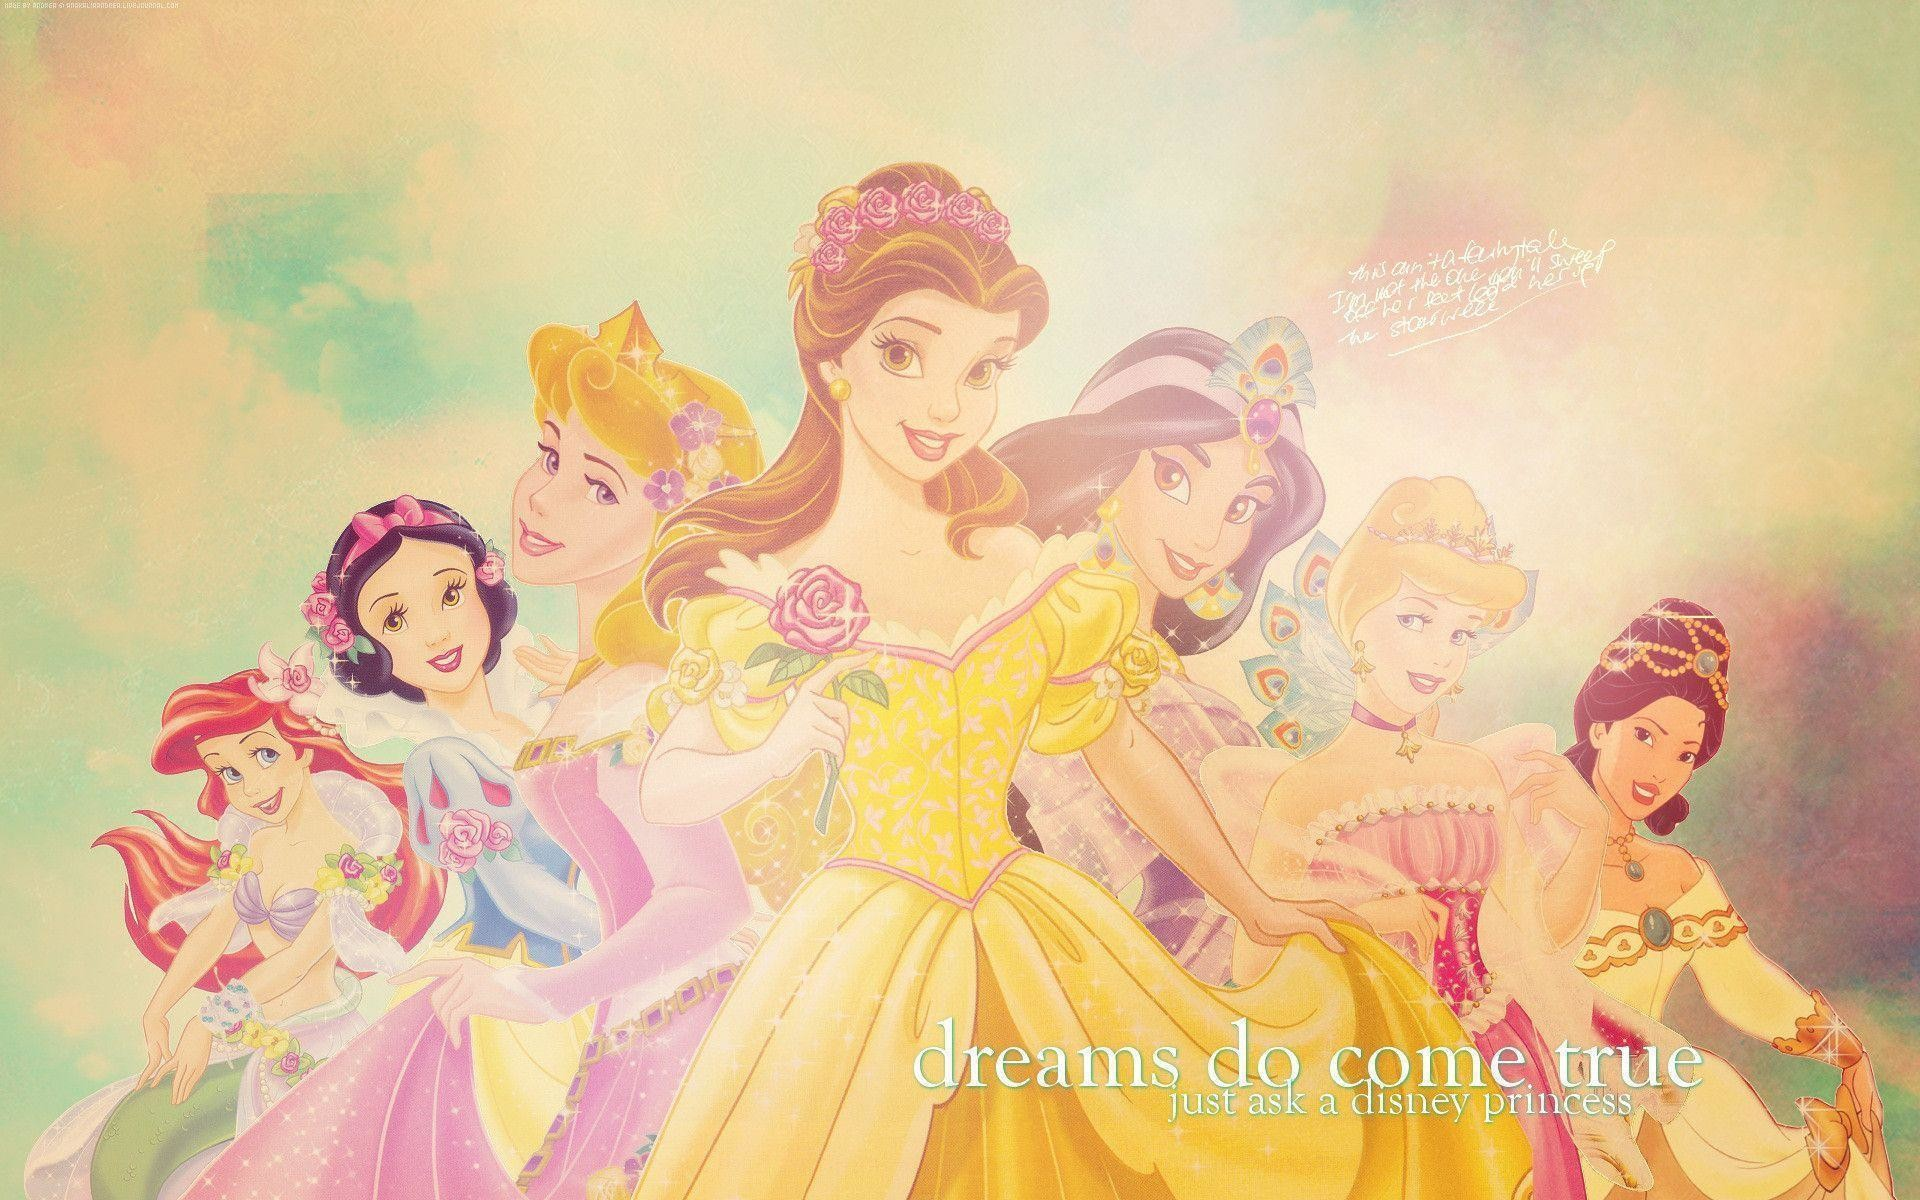 1920x1200 Disney Princesses - Disney Princess Wallpaper (7250269) - Fanpop